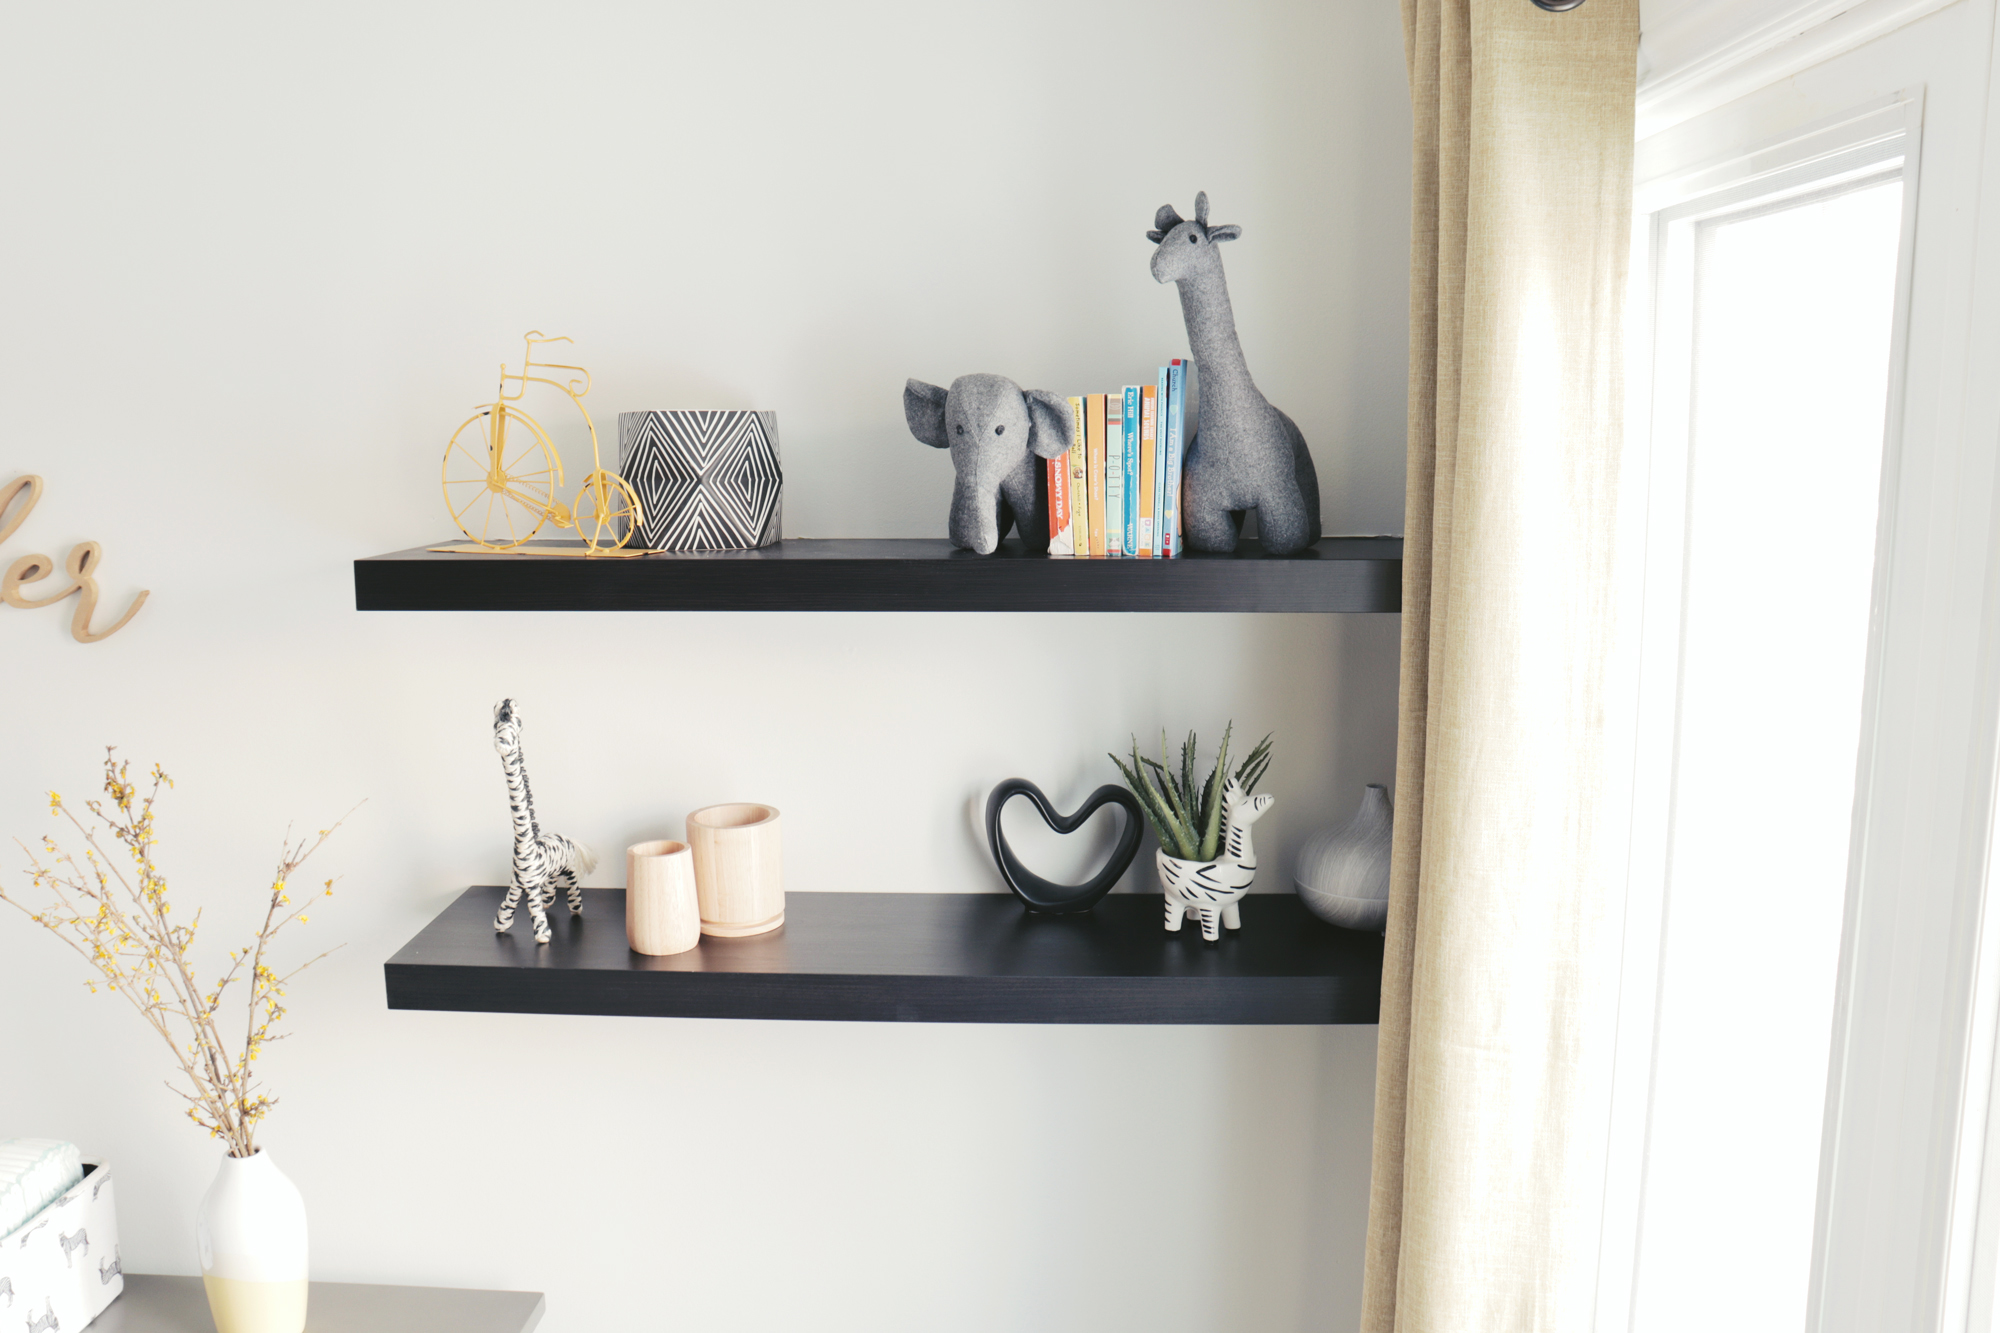 Floating shelves provide storage for decorative accents and books